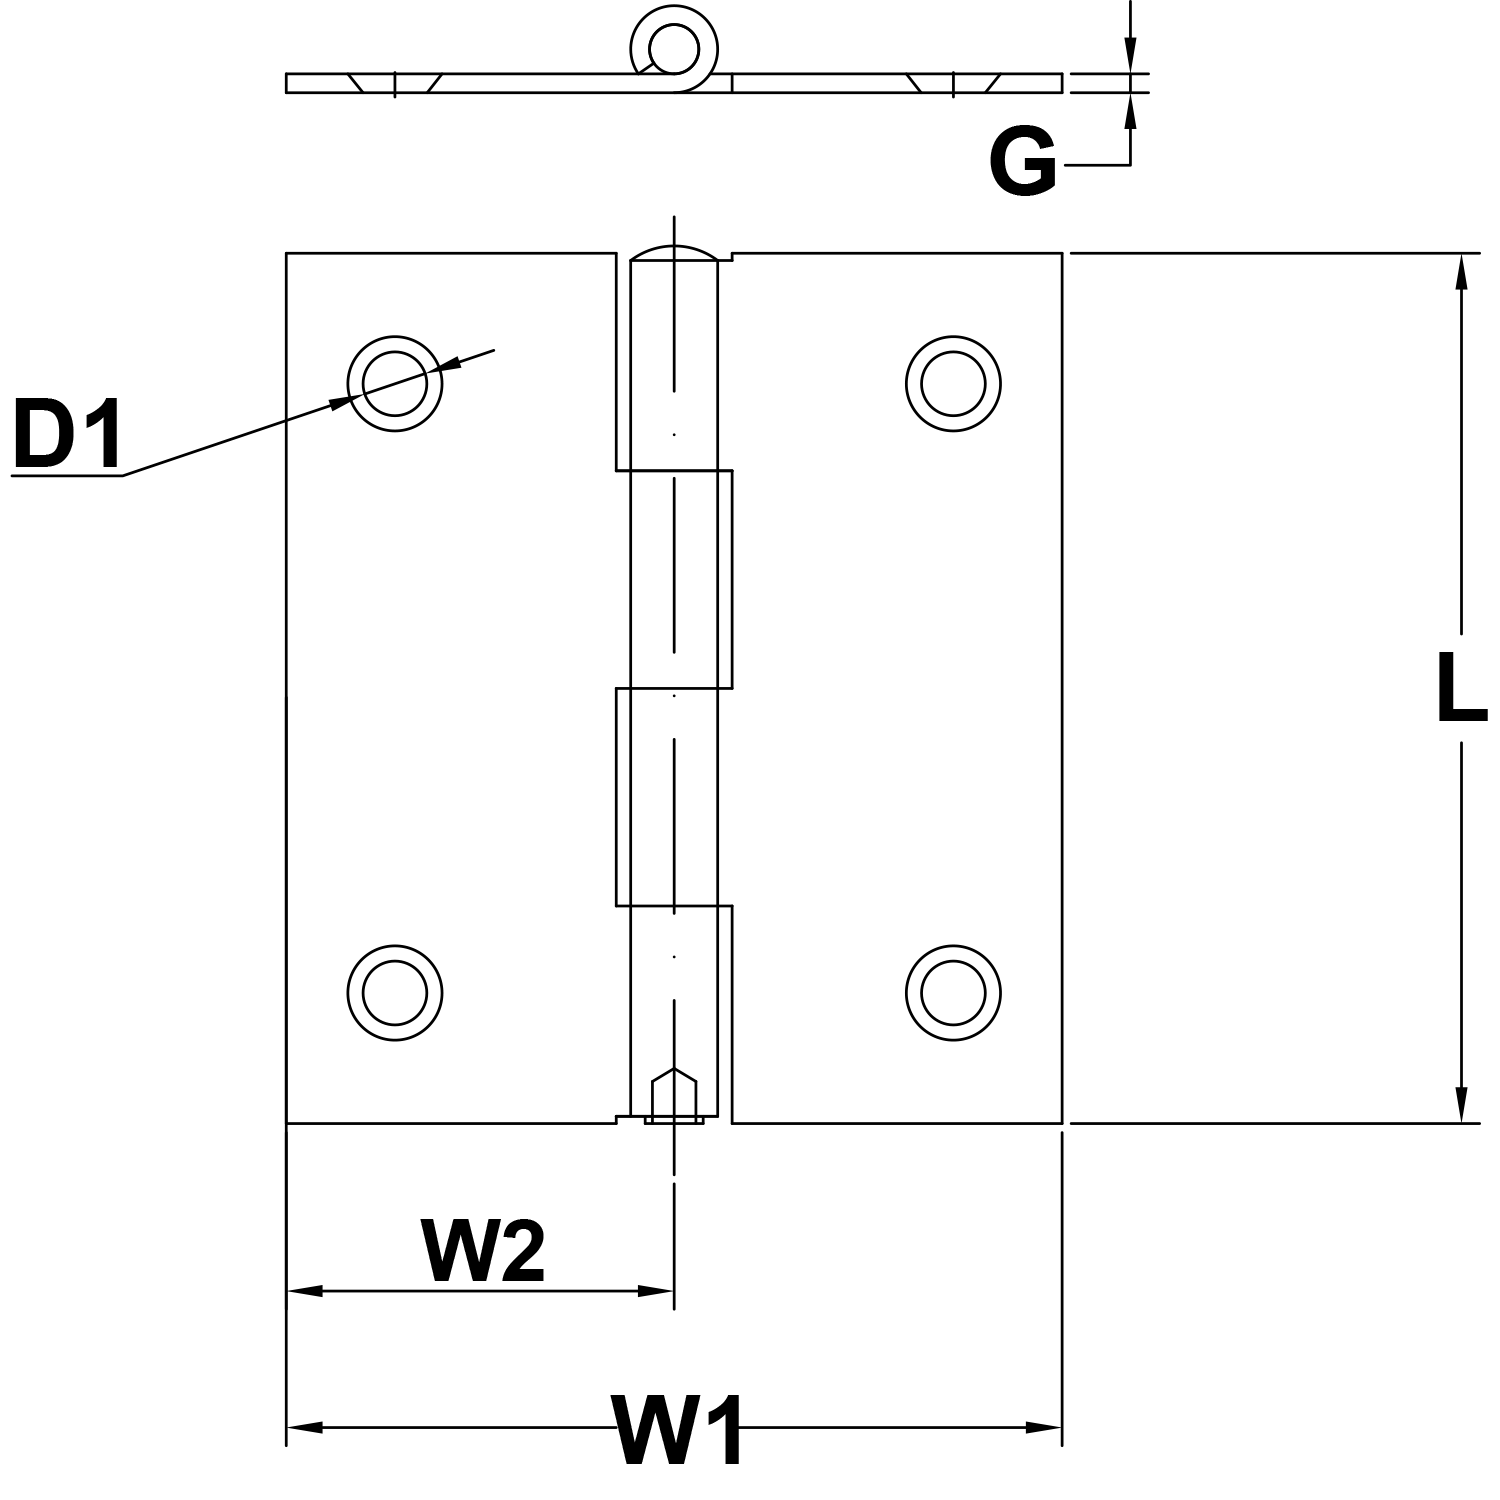 098-x-118-Stainless-Steel-Hinge-Style-1191-diagram